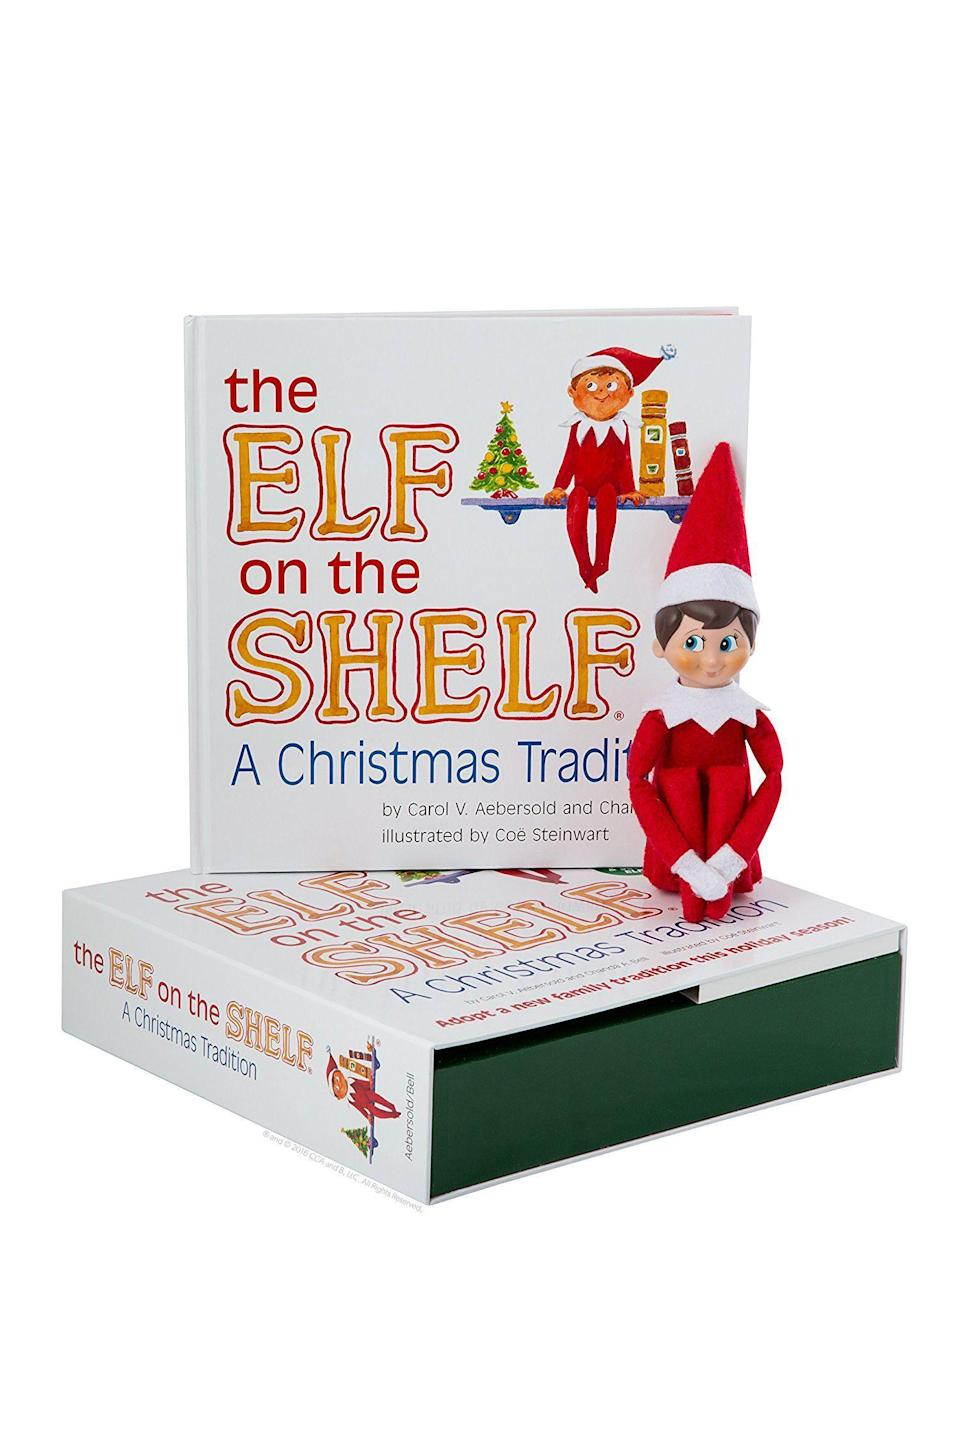 """<p><strong>The Elf on the Shelf</strong></p><p>amazon.com</p><p><strong>$52.50</strong></p><p><a href=""""https://www.amazon.com/dp/0976990709?tag=syn-yahoo-20&ascsubtag=%5Bartid%7C10055.g.3033%5Bsrc%7Cyahoo-us"""" rel=""""nofollow noopener"""" target=""""_blank"""" data-ylk=""""slk:SHOP NOW"""" class=""""link rapid-noclick-resp"""">SHOP NOW</a></p><p>Don't forget to <a href=""""https://www.countryliving.com/diy-crafts/a29652528/elf-on-the-shelf-names/"""" rel=""""nofollow noopener"""" target=""""_blank"""" data-ylk=""""slk:give your new elf a name"""" class=""""link rapid-noclick-resp"""">give your new elf a name</a>! That's half the fun. Once he's properly named, then he can start his job reporting to Santa at the North Pole each night, and make his official arrival in your home.</p>"""